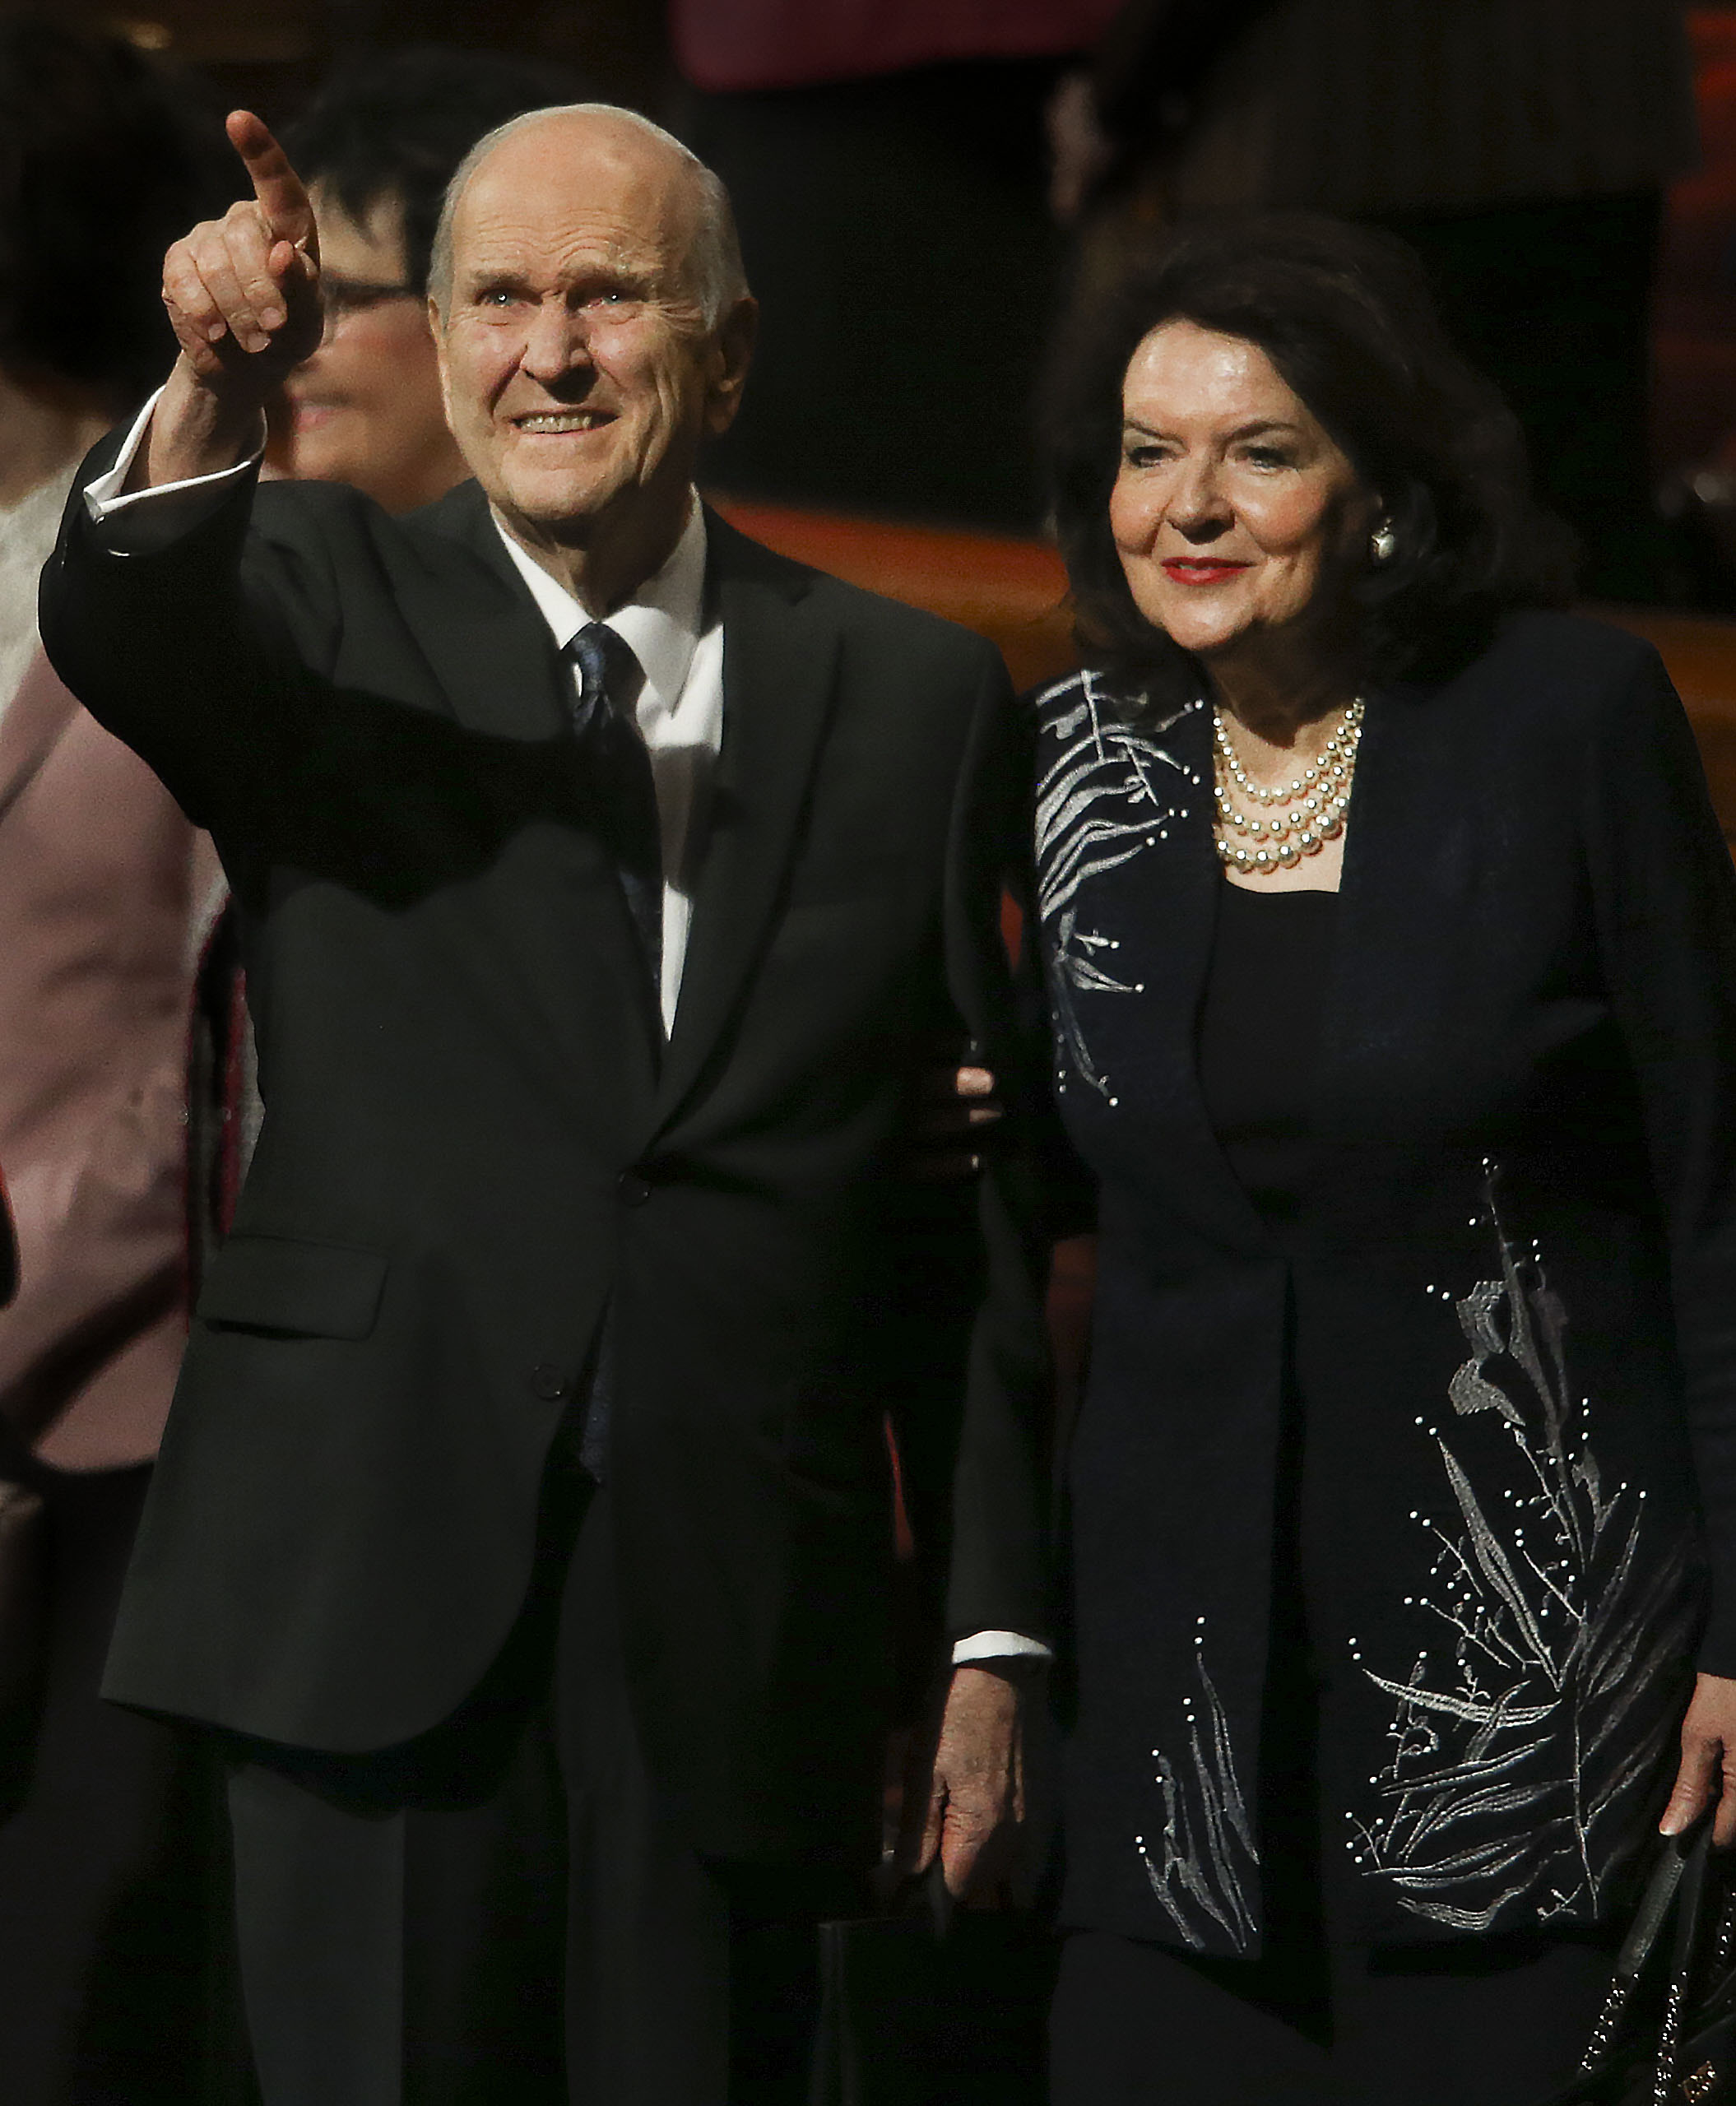 President Russell M. Nelson and his wife Sister Wendy Nelson wave to attendees after the Sunday afternoon session of the 189th Semiannual General Conference of The Church of Jesus Christ of Latter-day Saints in Salt Lake City on Sunday, Oct. 6, 2019.